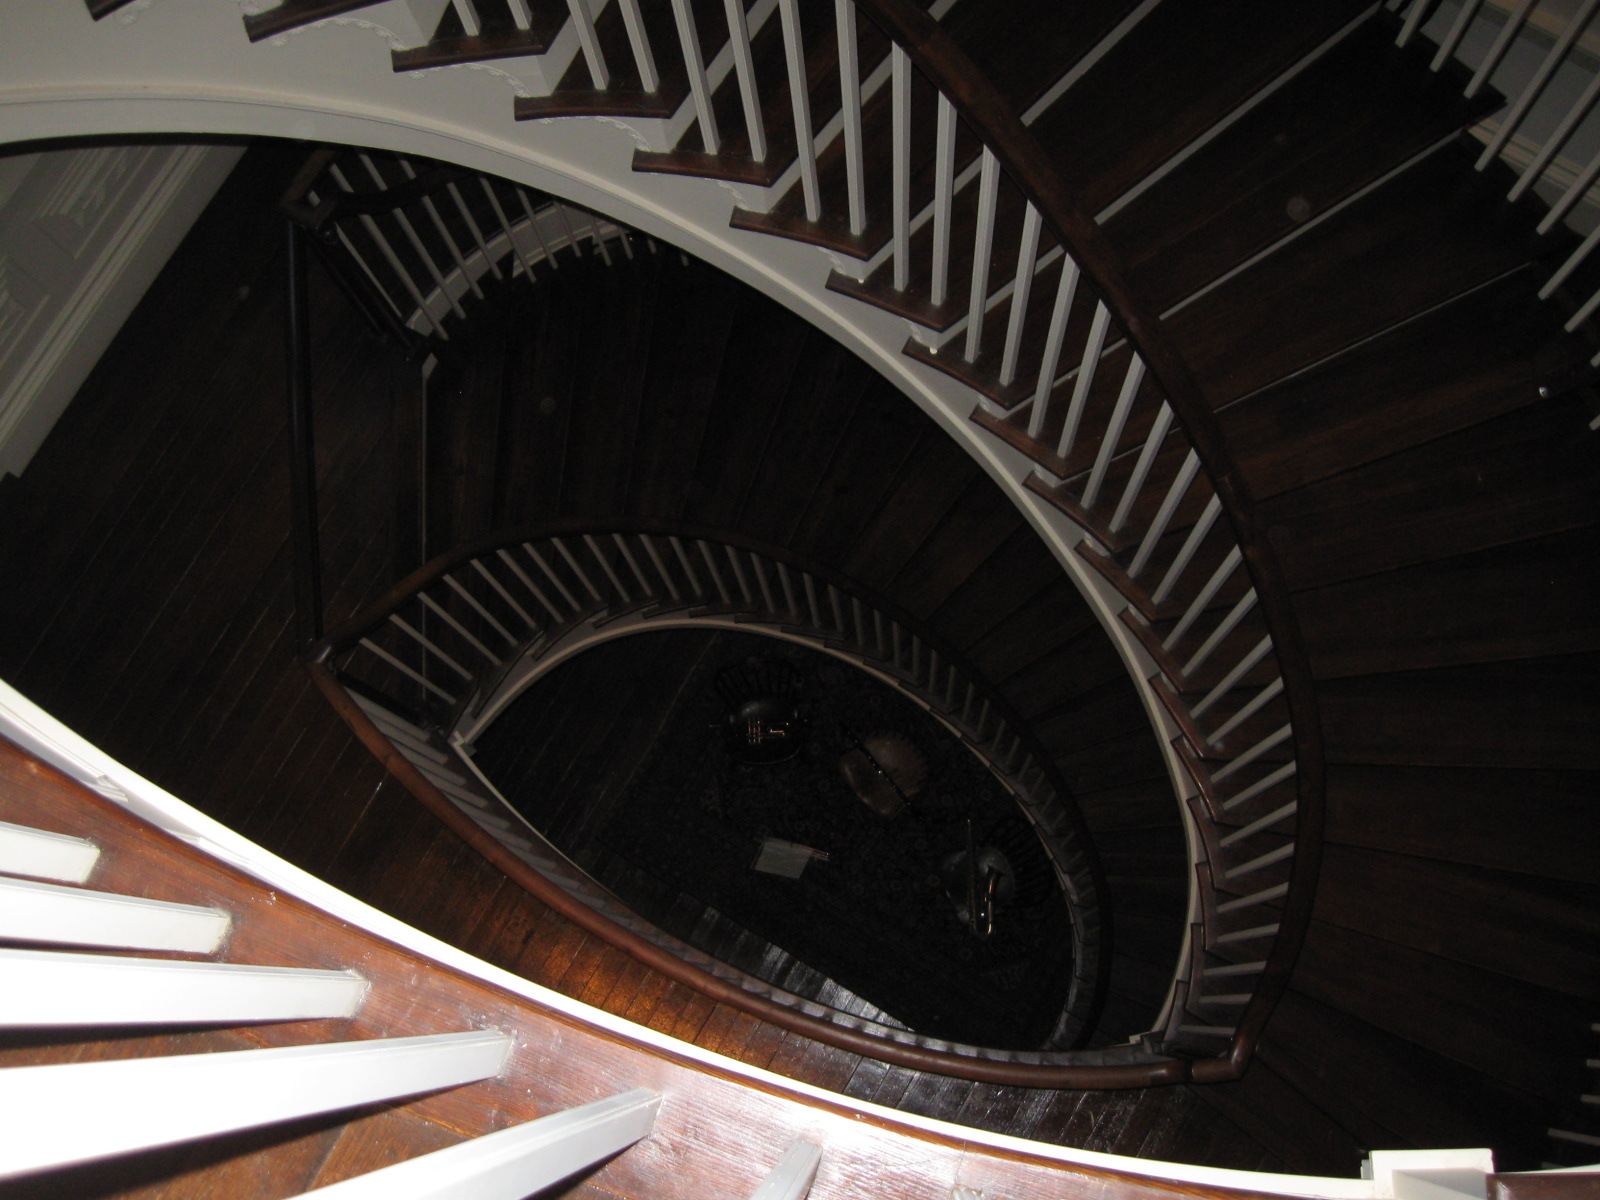 How to build spiral staircase blueprints stone for Spiral staircase blueprints